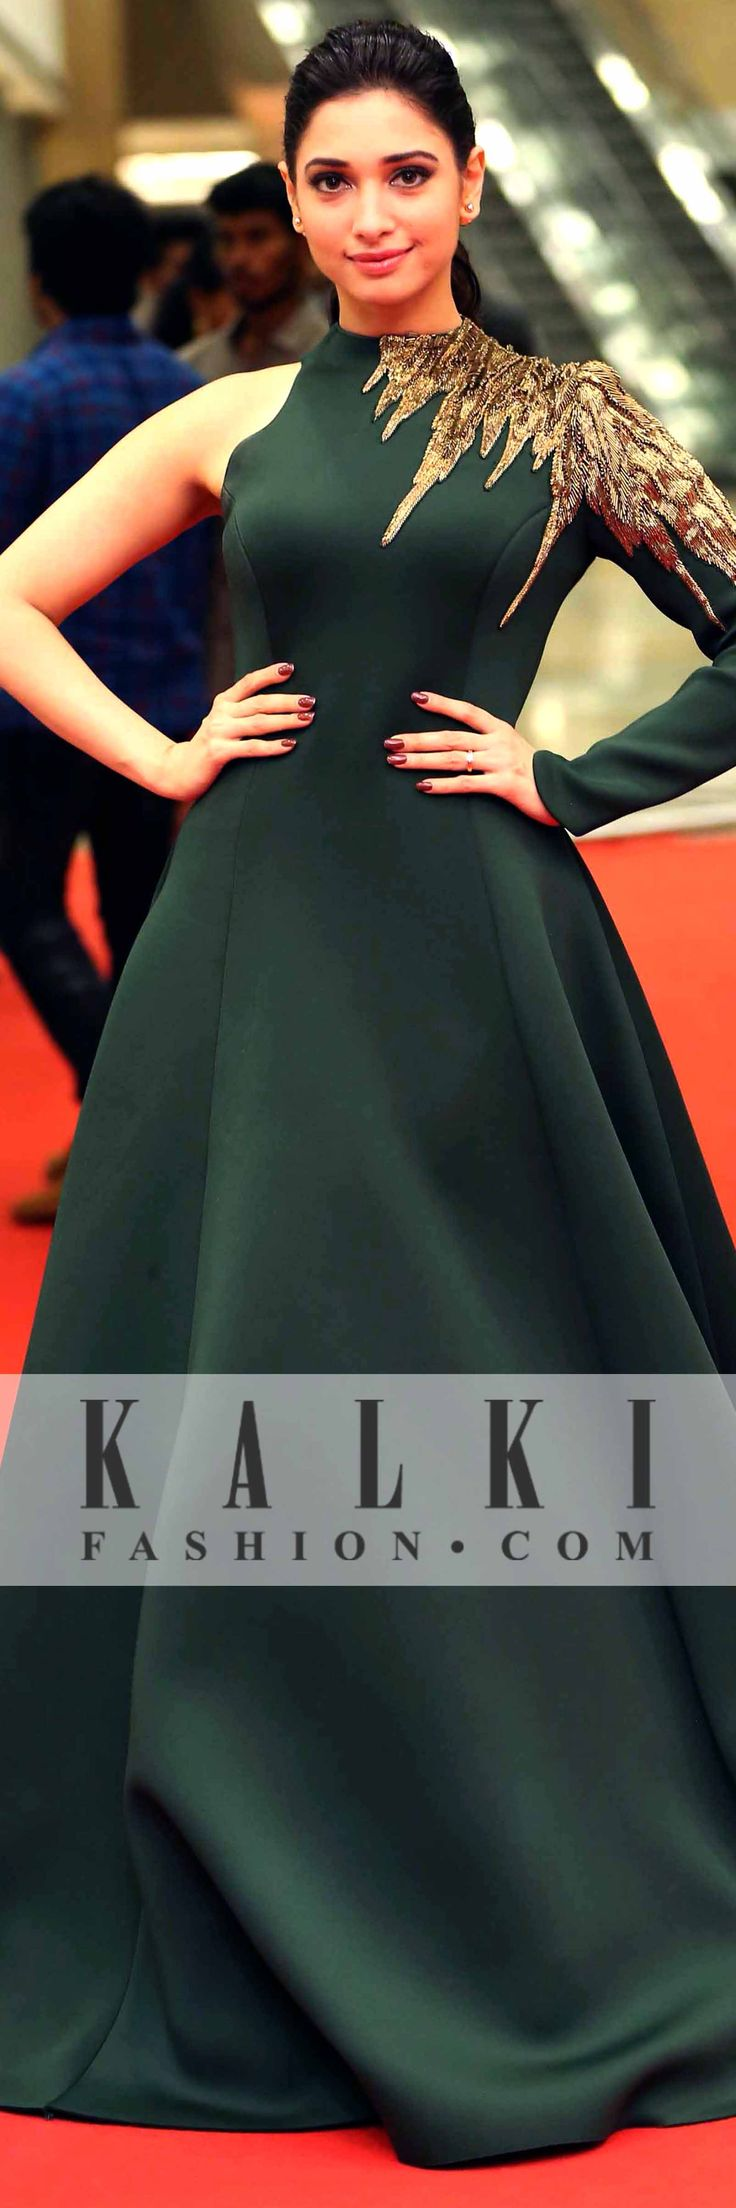 Dazzling in a bottle green gown with embellishing golden work, she had all eyes on her as she walked down the ramp.